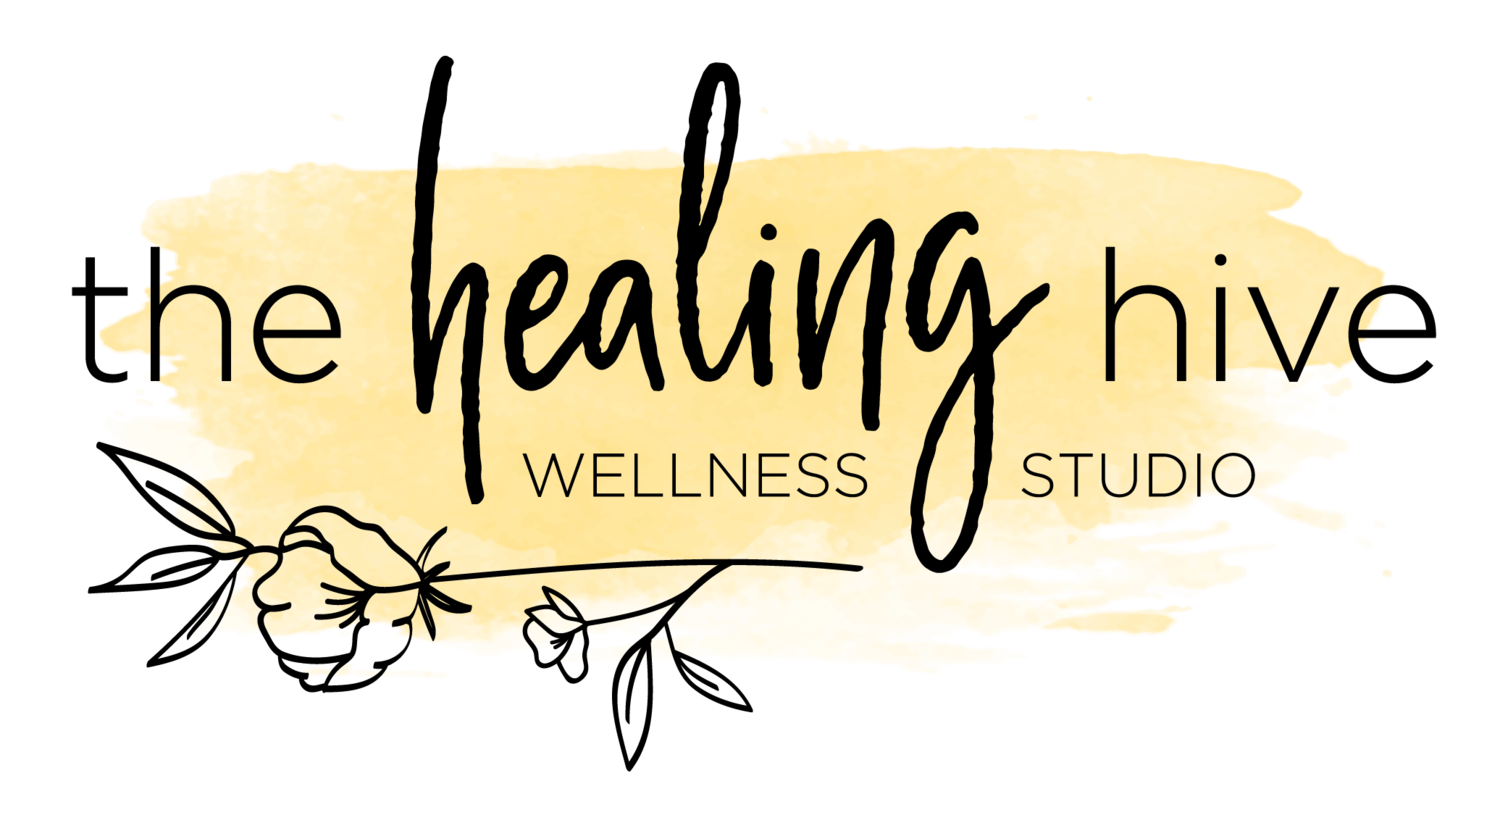 The Healing Hive Wellness Studio